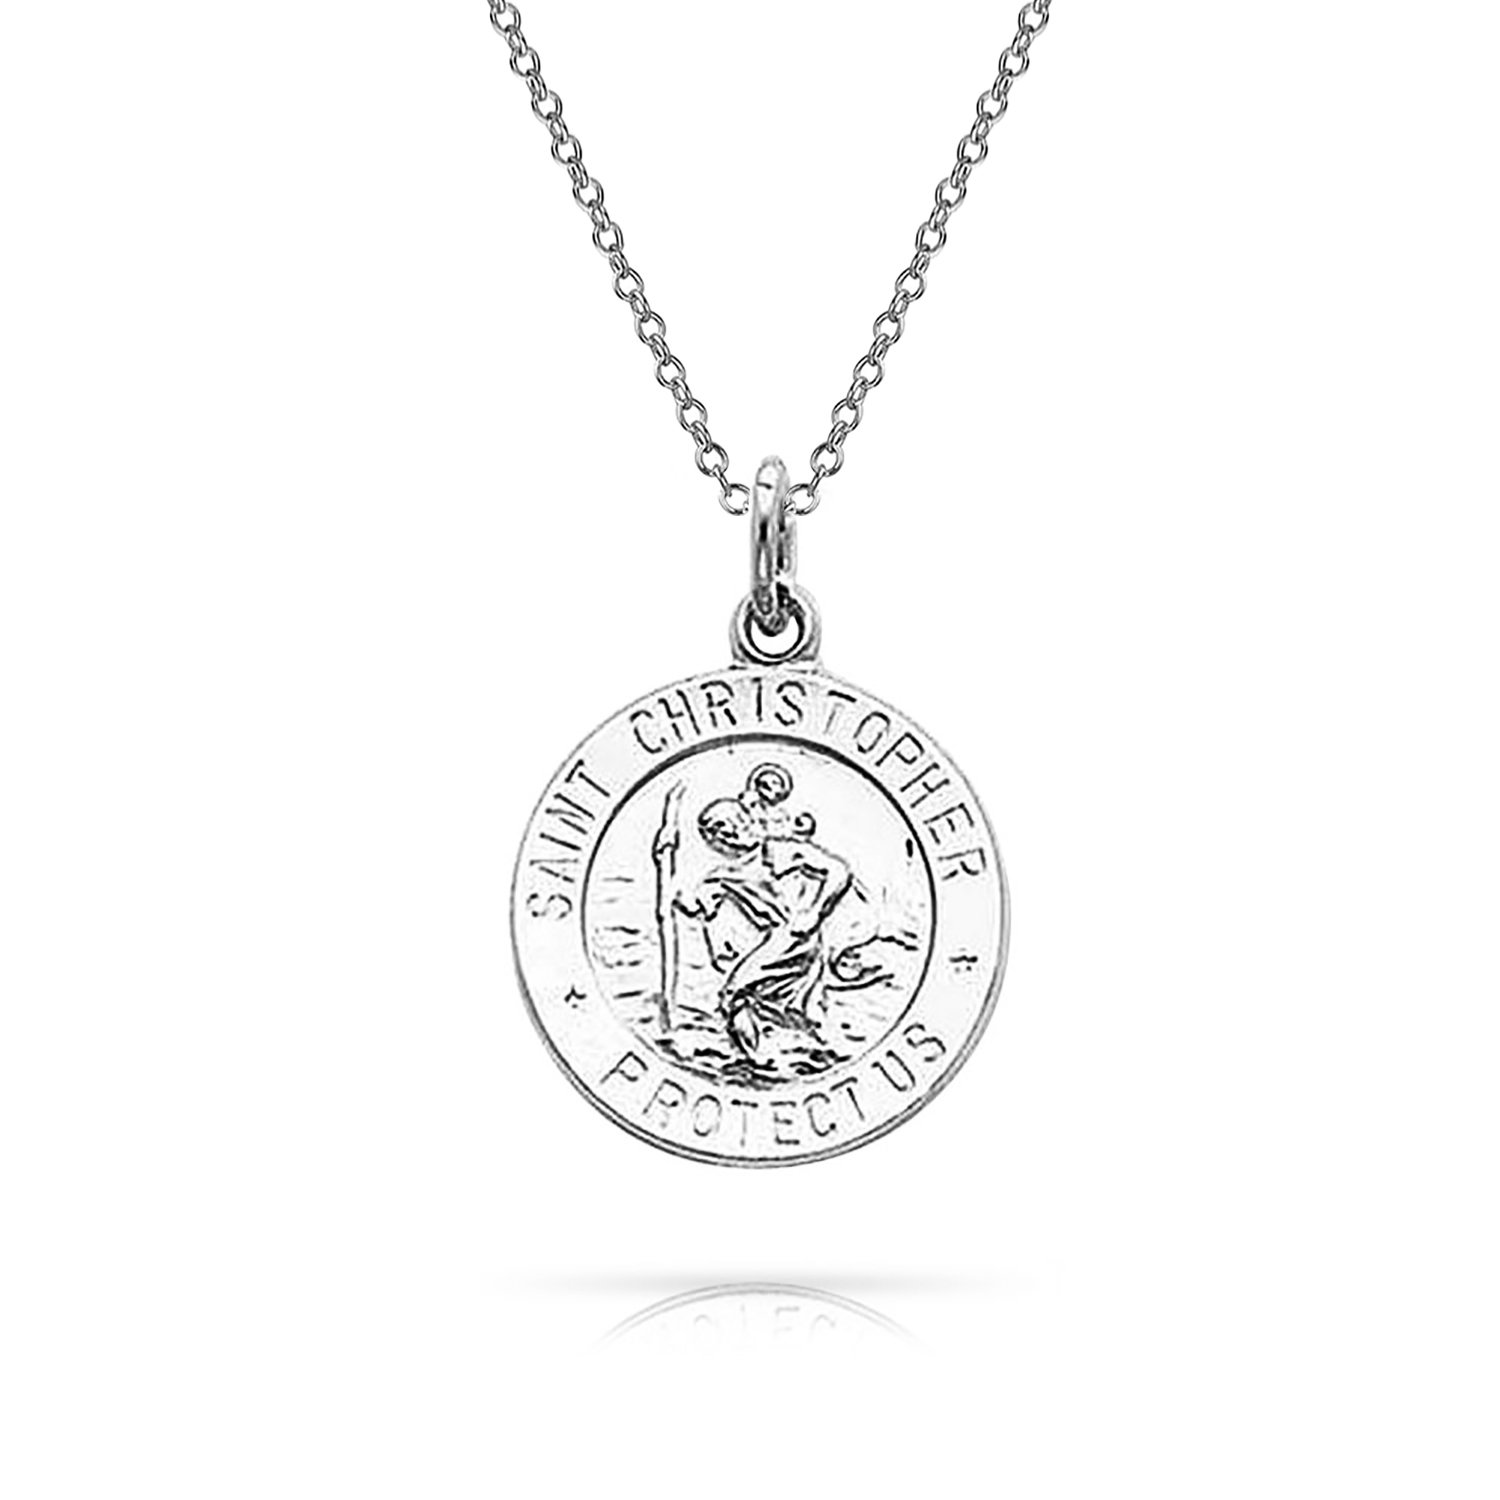 Engravable St Christopher Protect Us Medallion Religious Pendant Sterling Silver Necklace 18 Inches